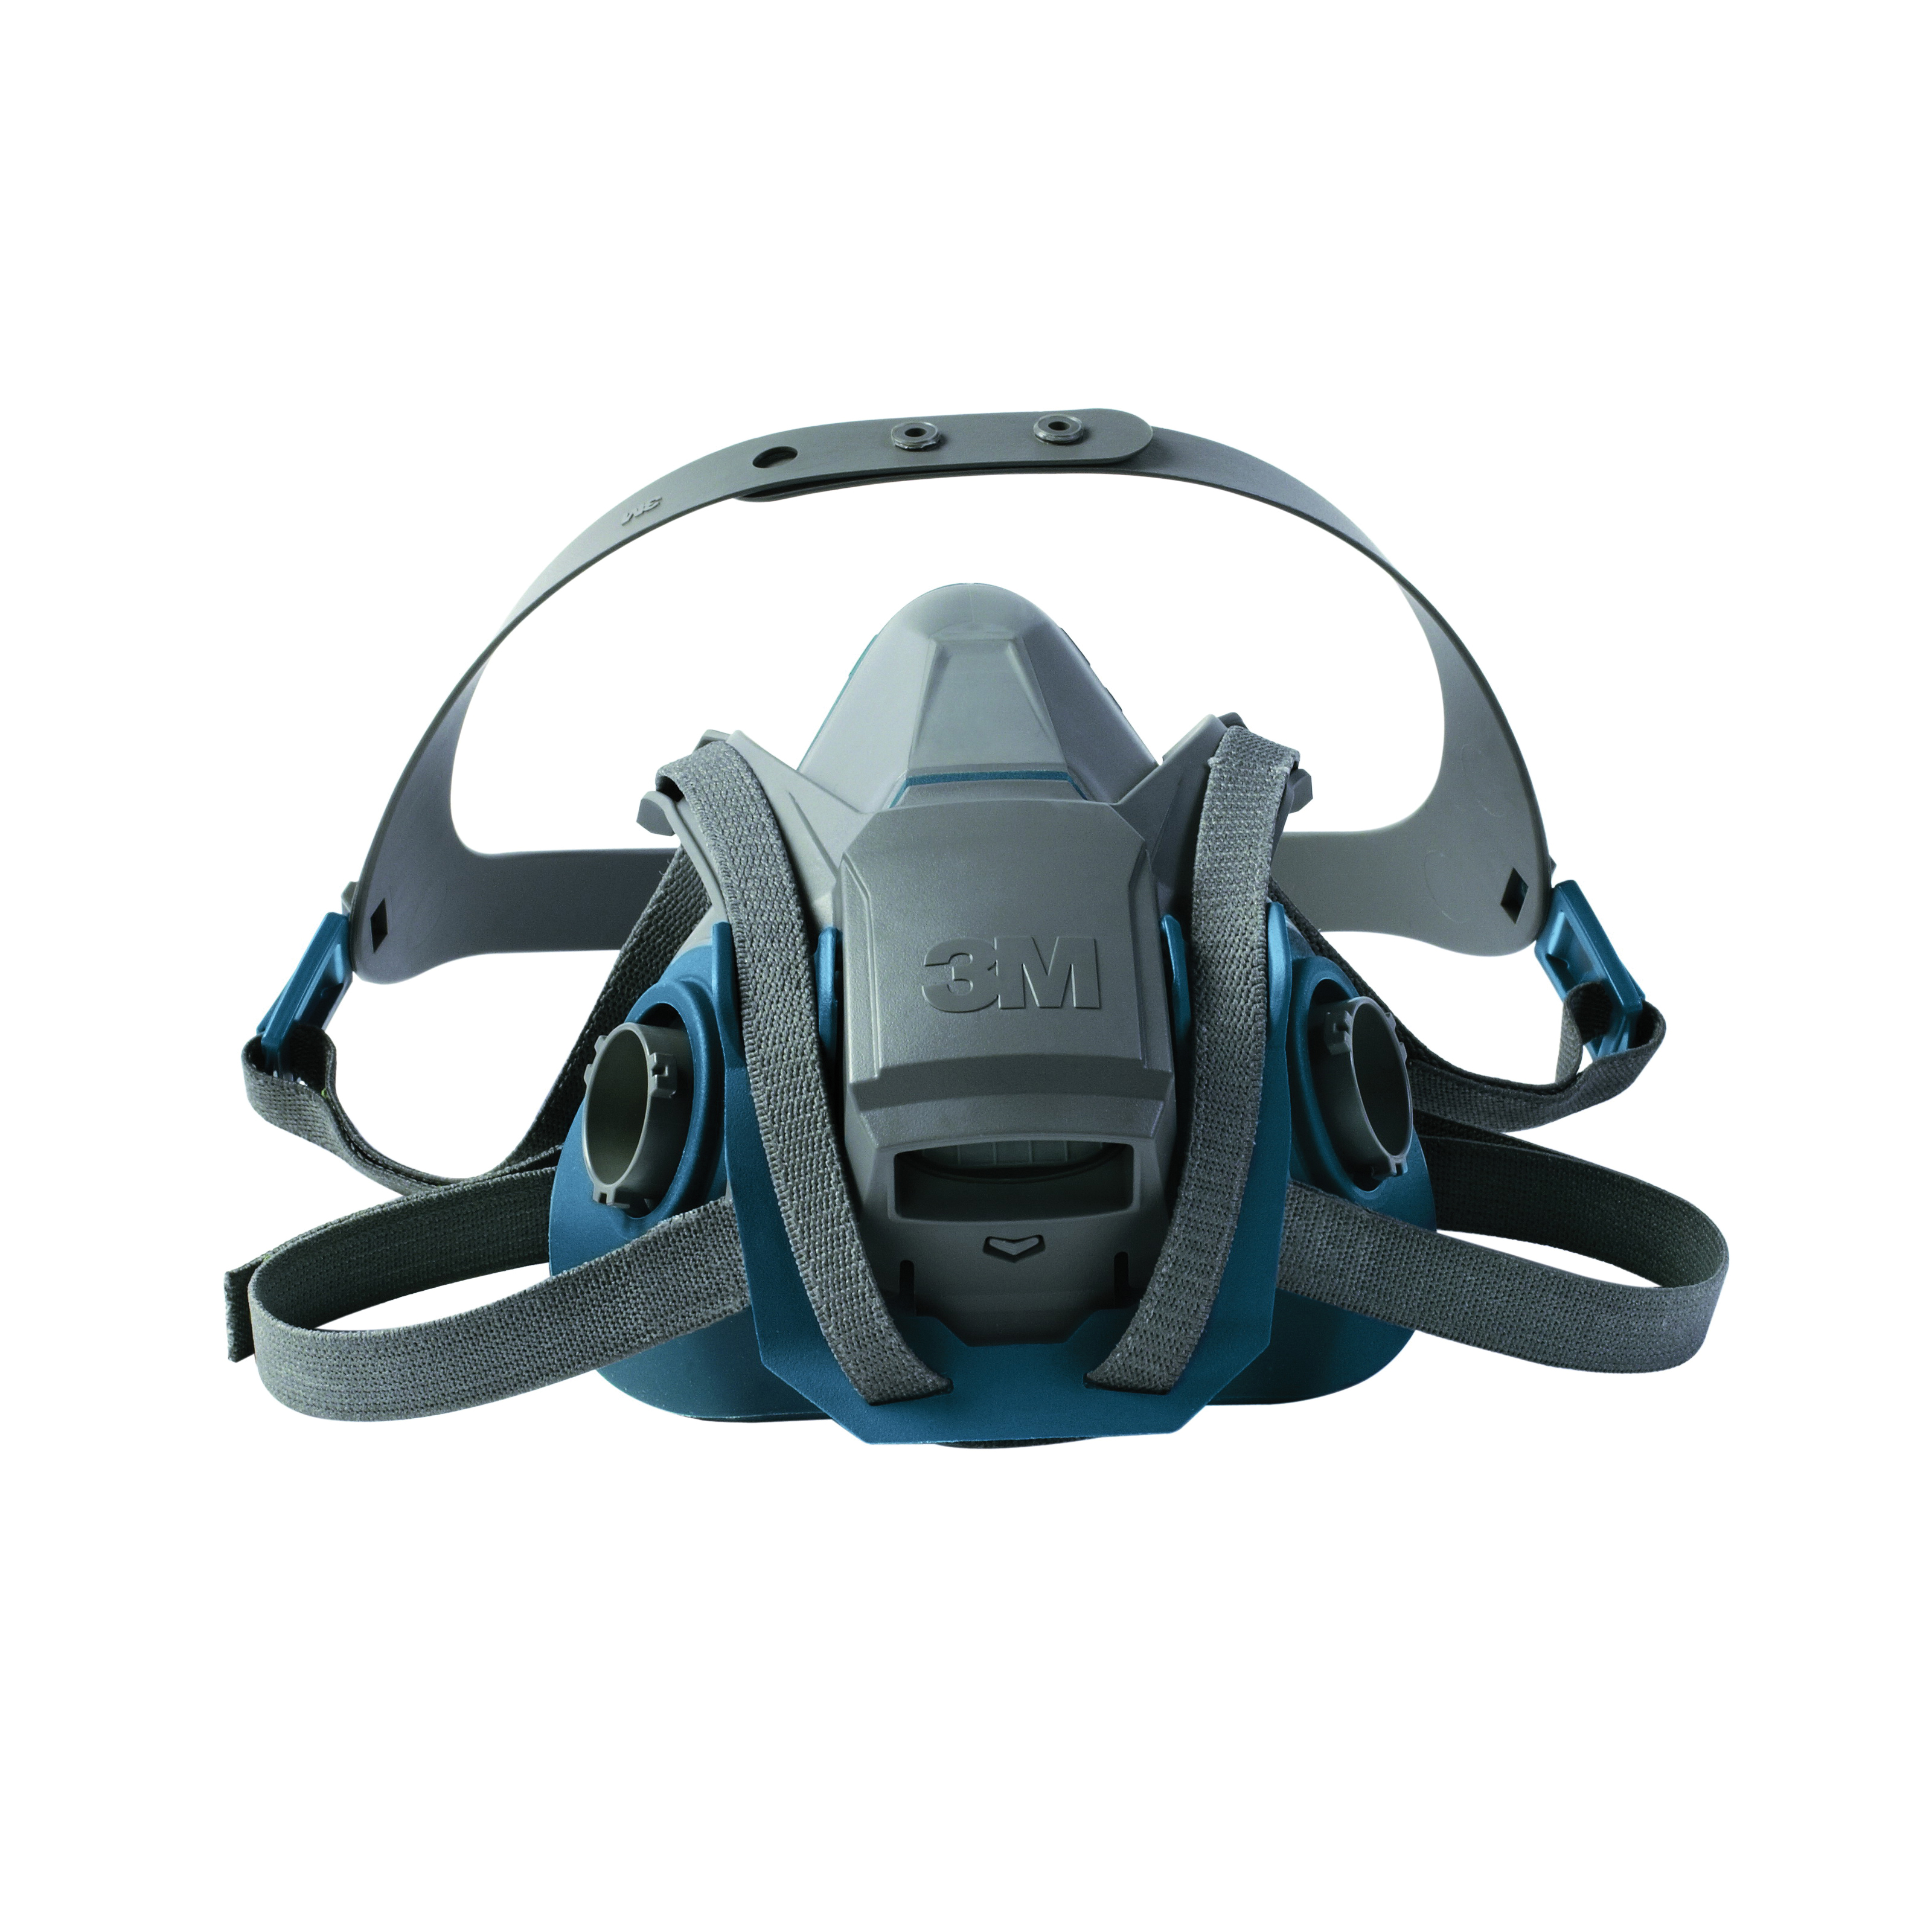 3M™ 051131-49492 6503QL Probed Reusable Half Facepiece Respirator With Cool Flow™ Exhalation Valve, L, 4-Point Quick Latch Suspension, Bayonet Connection, Resists: Gases and Vapors